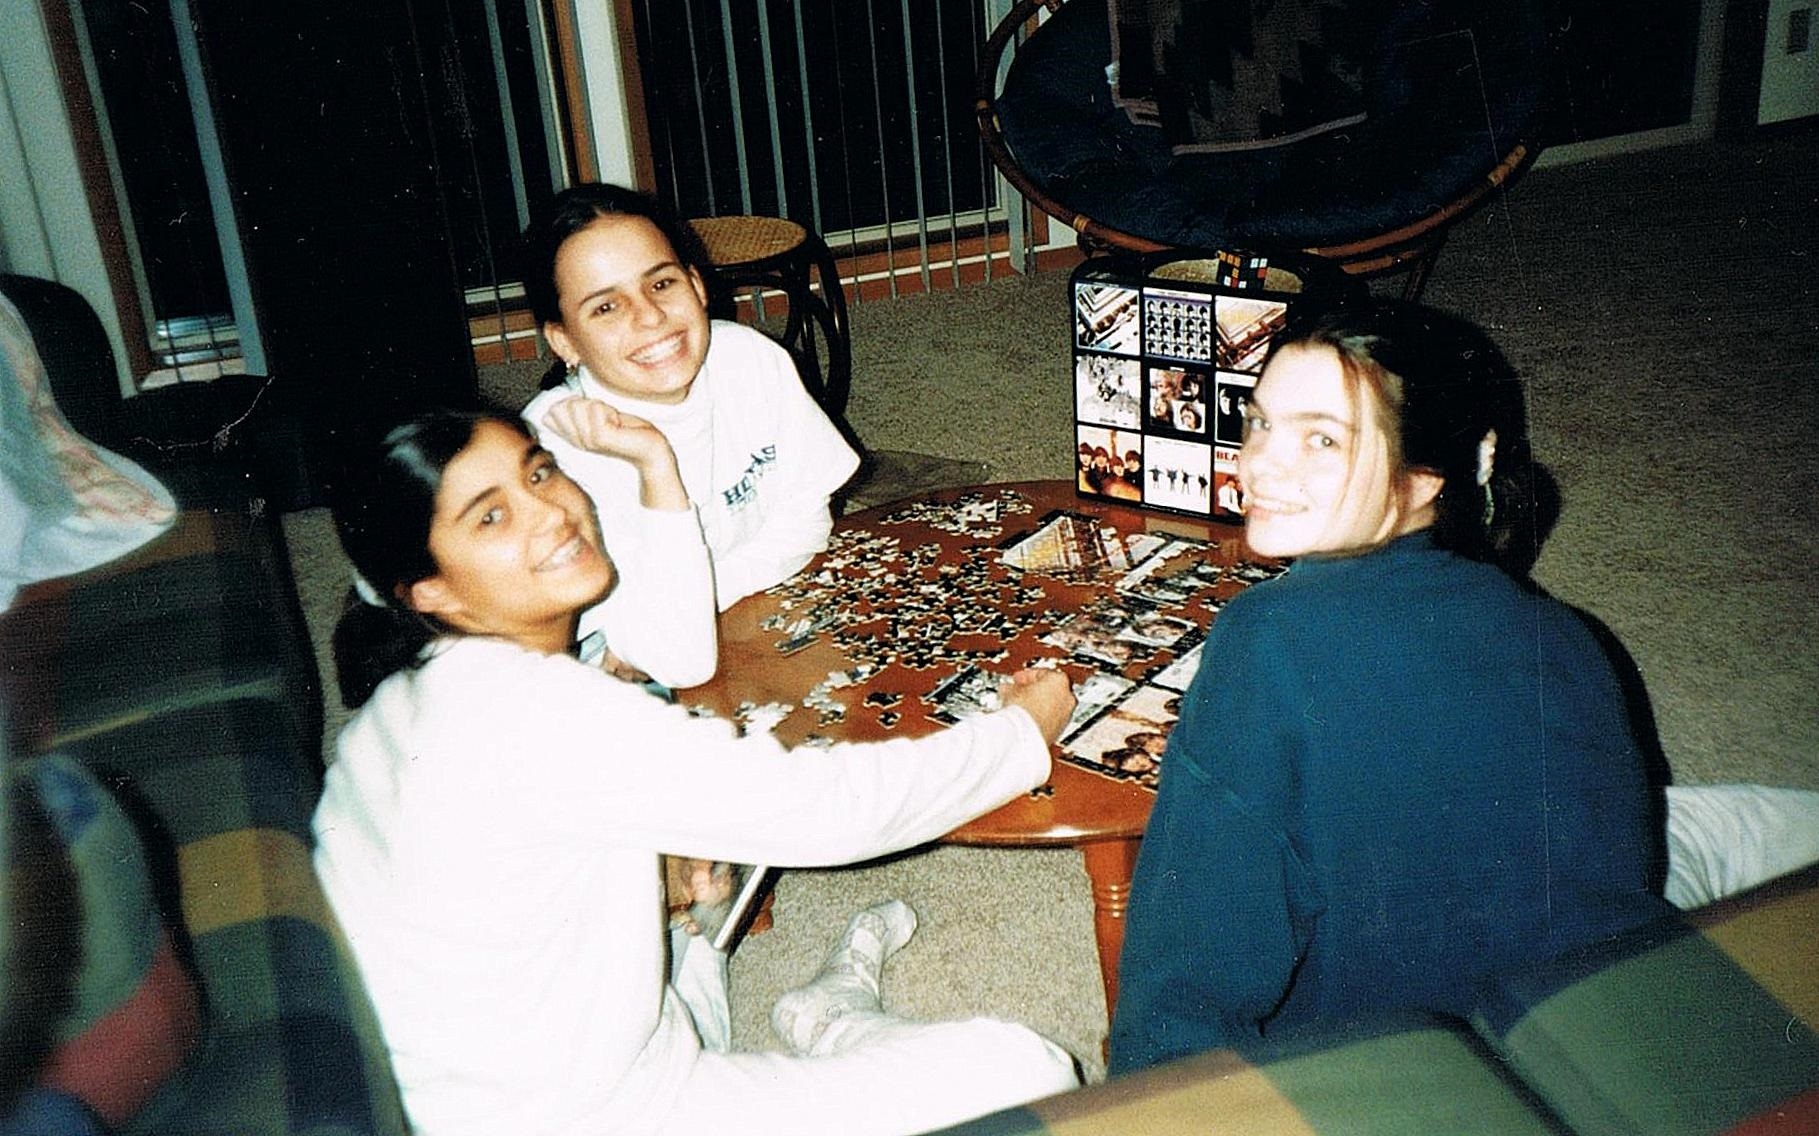 Melibee's Maria Snyder (right) during her exchange student experience in Costa Rica.